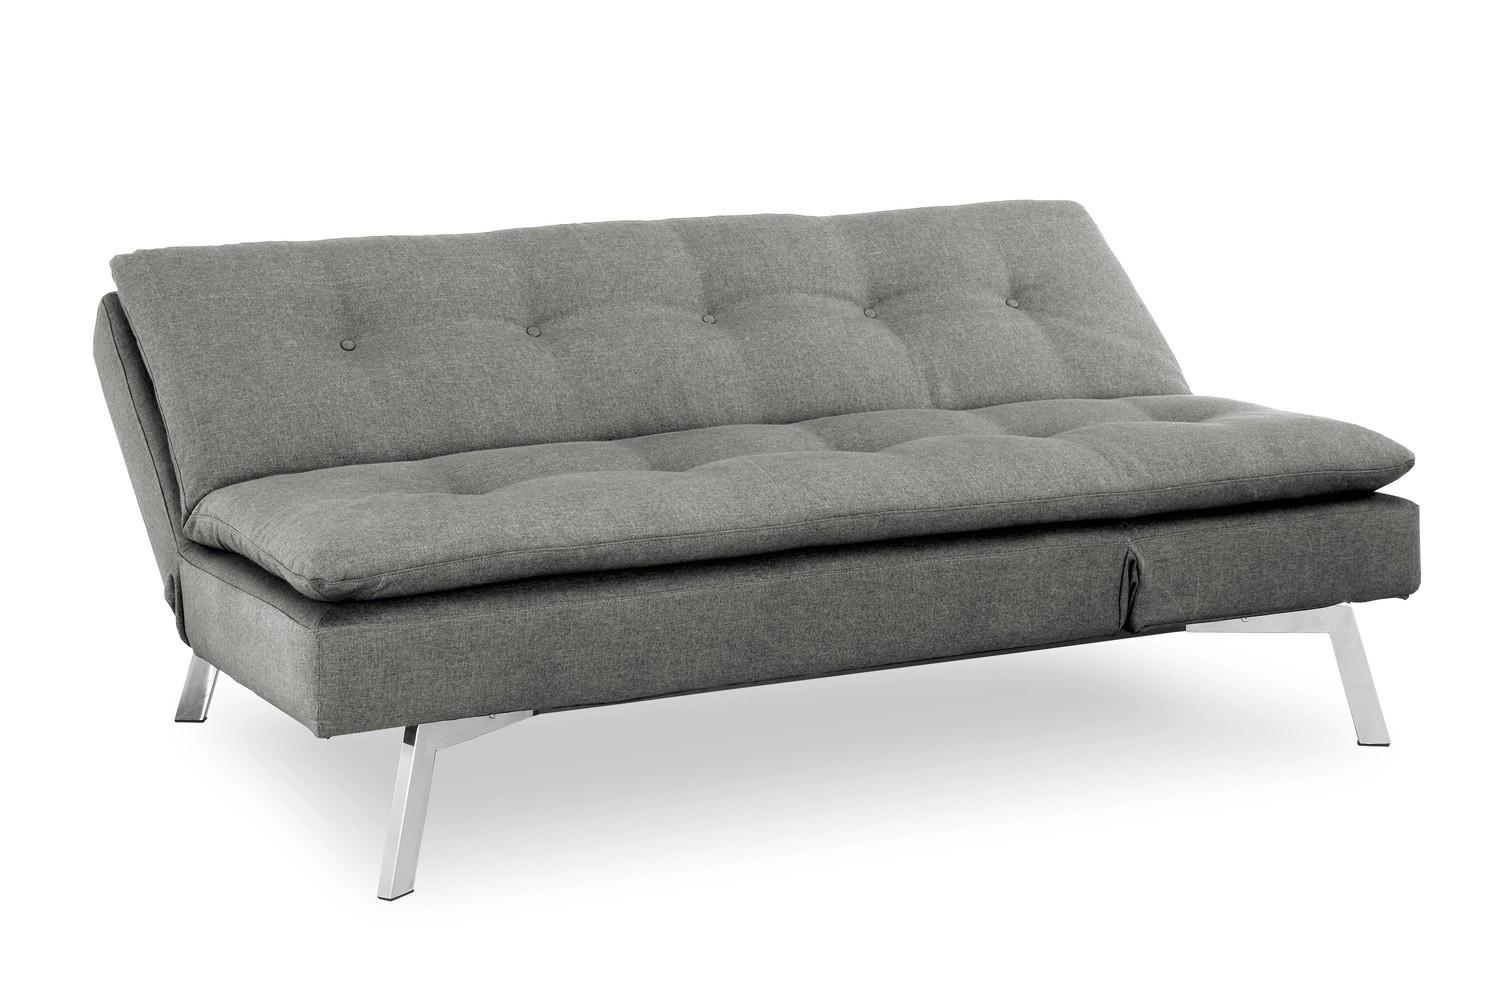 Shelby Sofa Sleeper | Shelby Futon | The Futon Shop With Regard To Cushion Sofa Beds (Image 13 of 23)